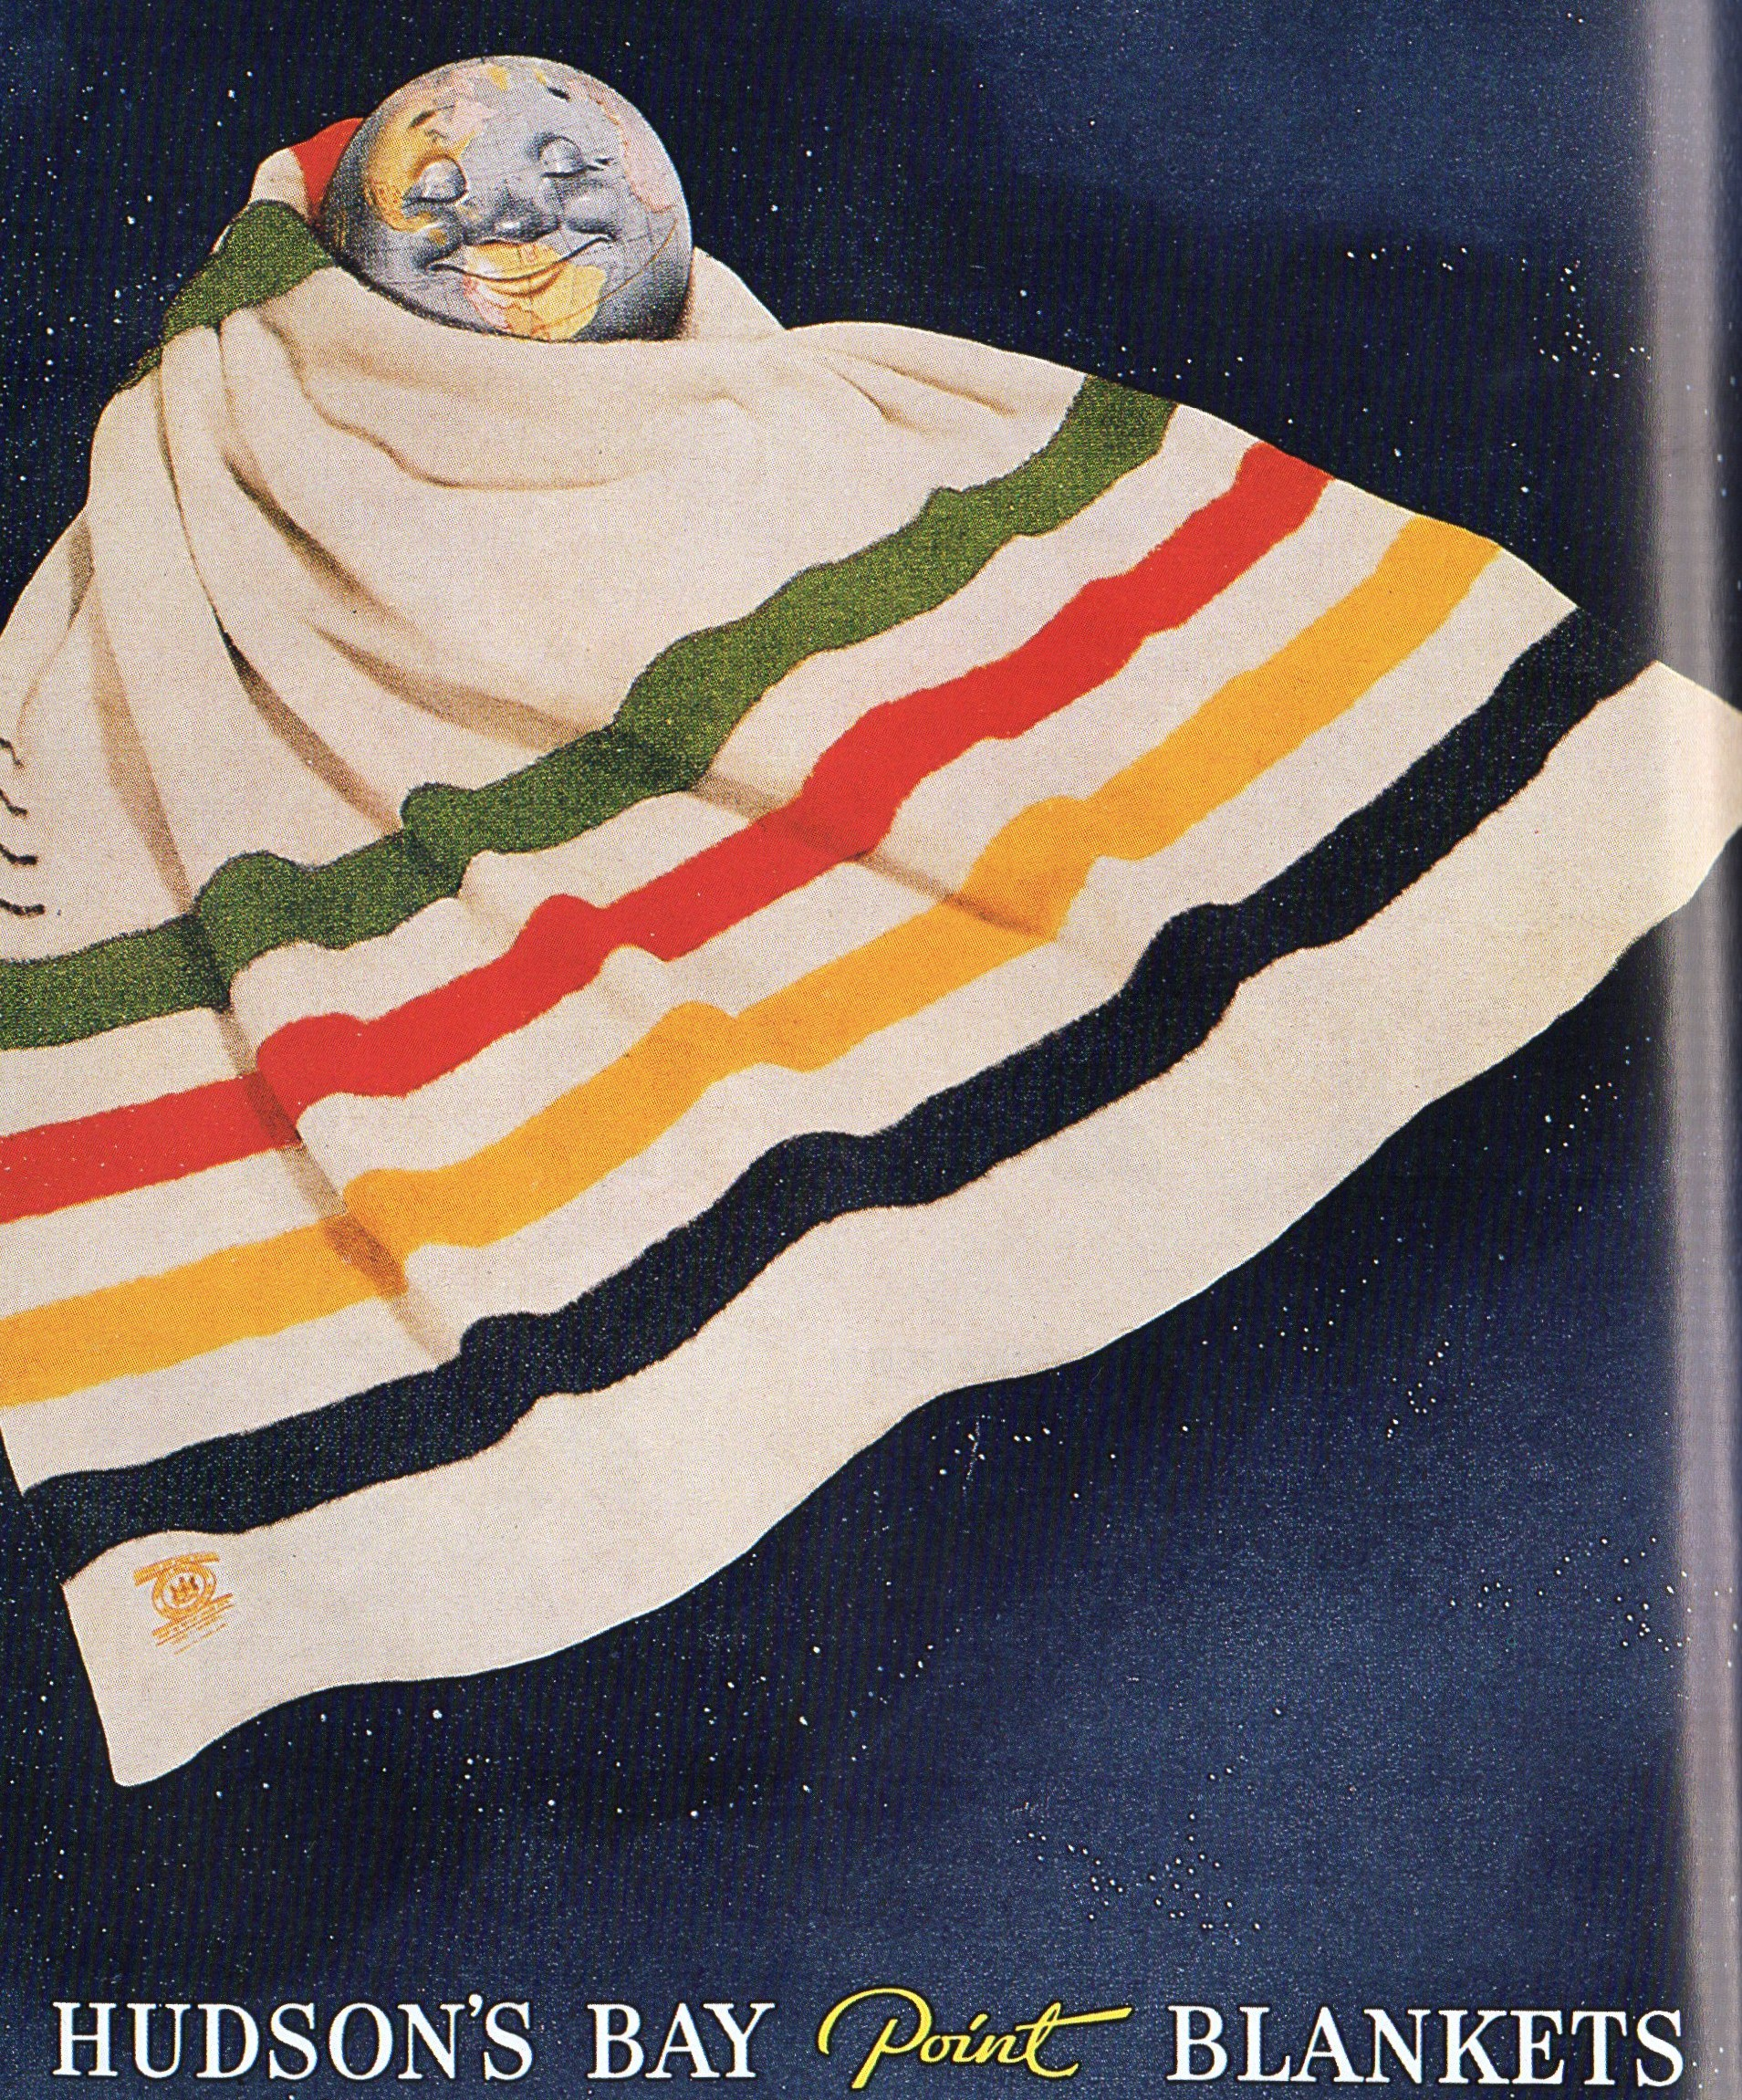 The History Of The Hudson S Bay Point Blanket The